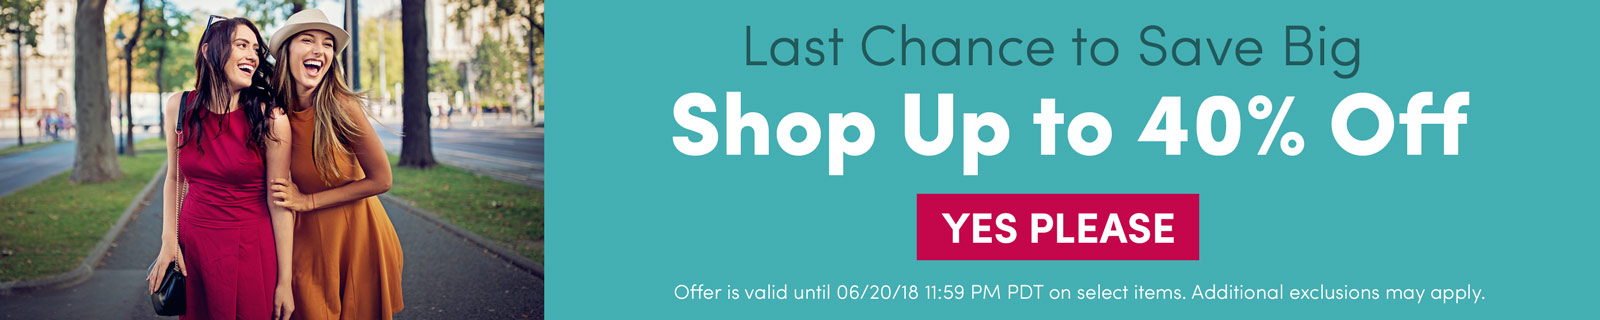 Last Chance to Save Big. Shop Up to 40% Off [Yes Please]